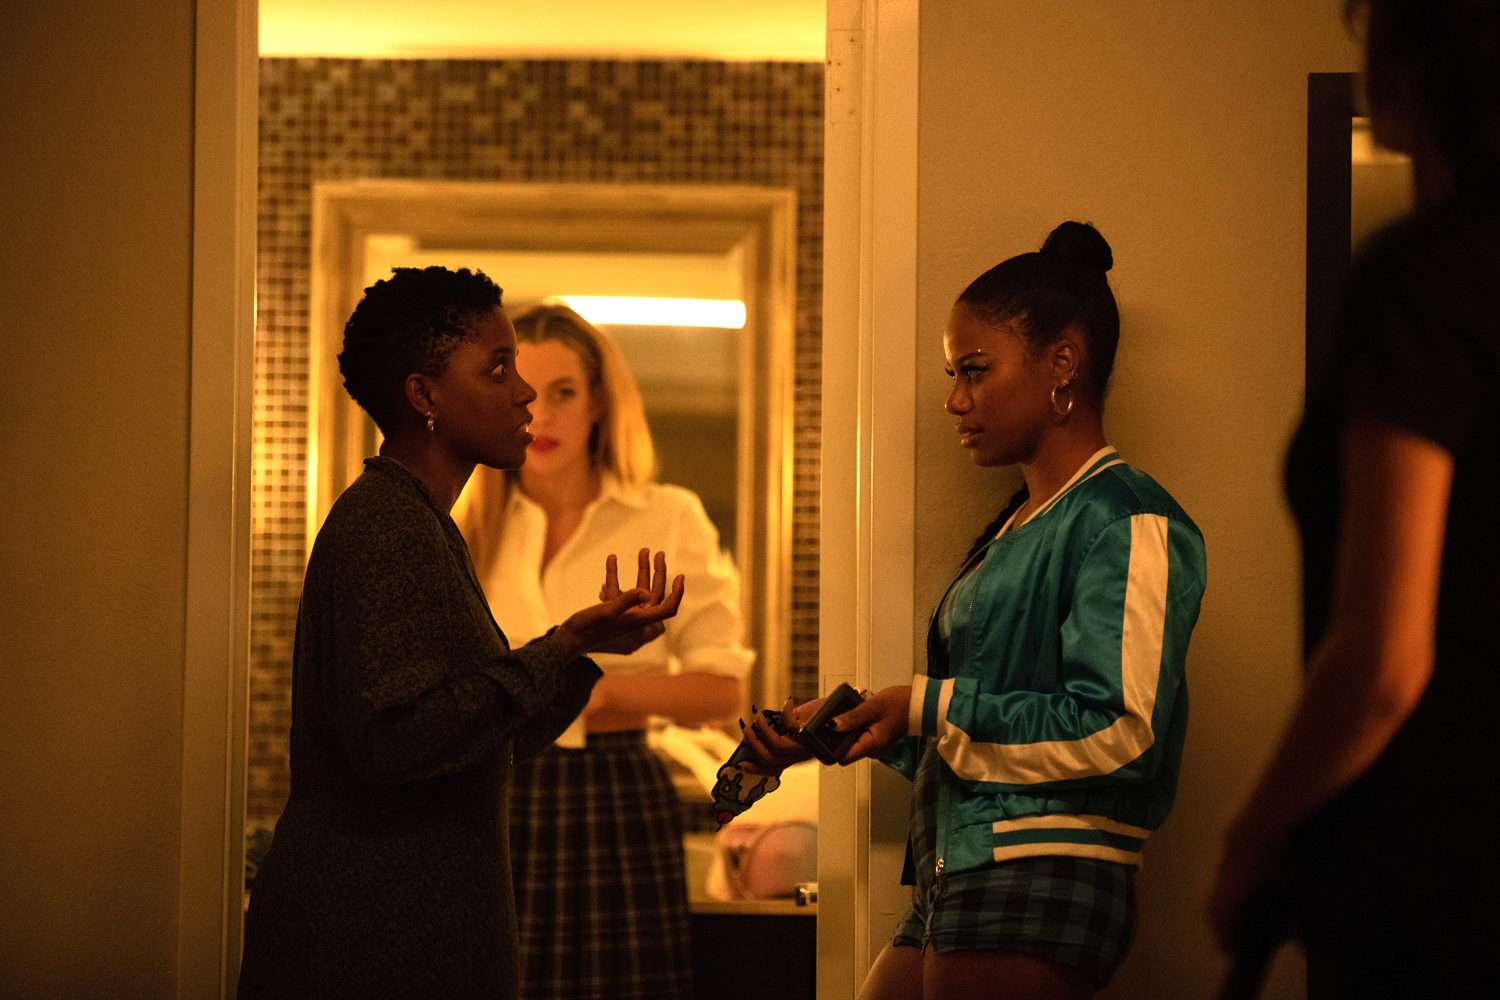 Director Janicza Bravo, actor Riley Keough and actor Taylour Paige on the set of ZOLA